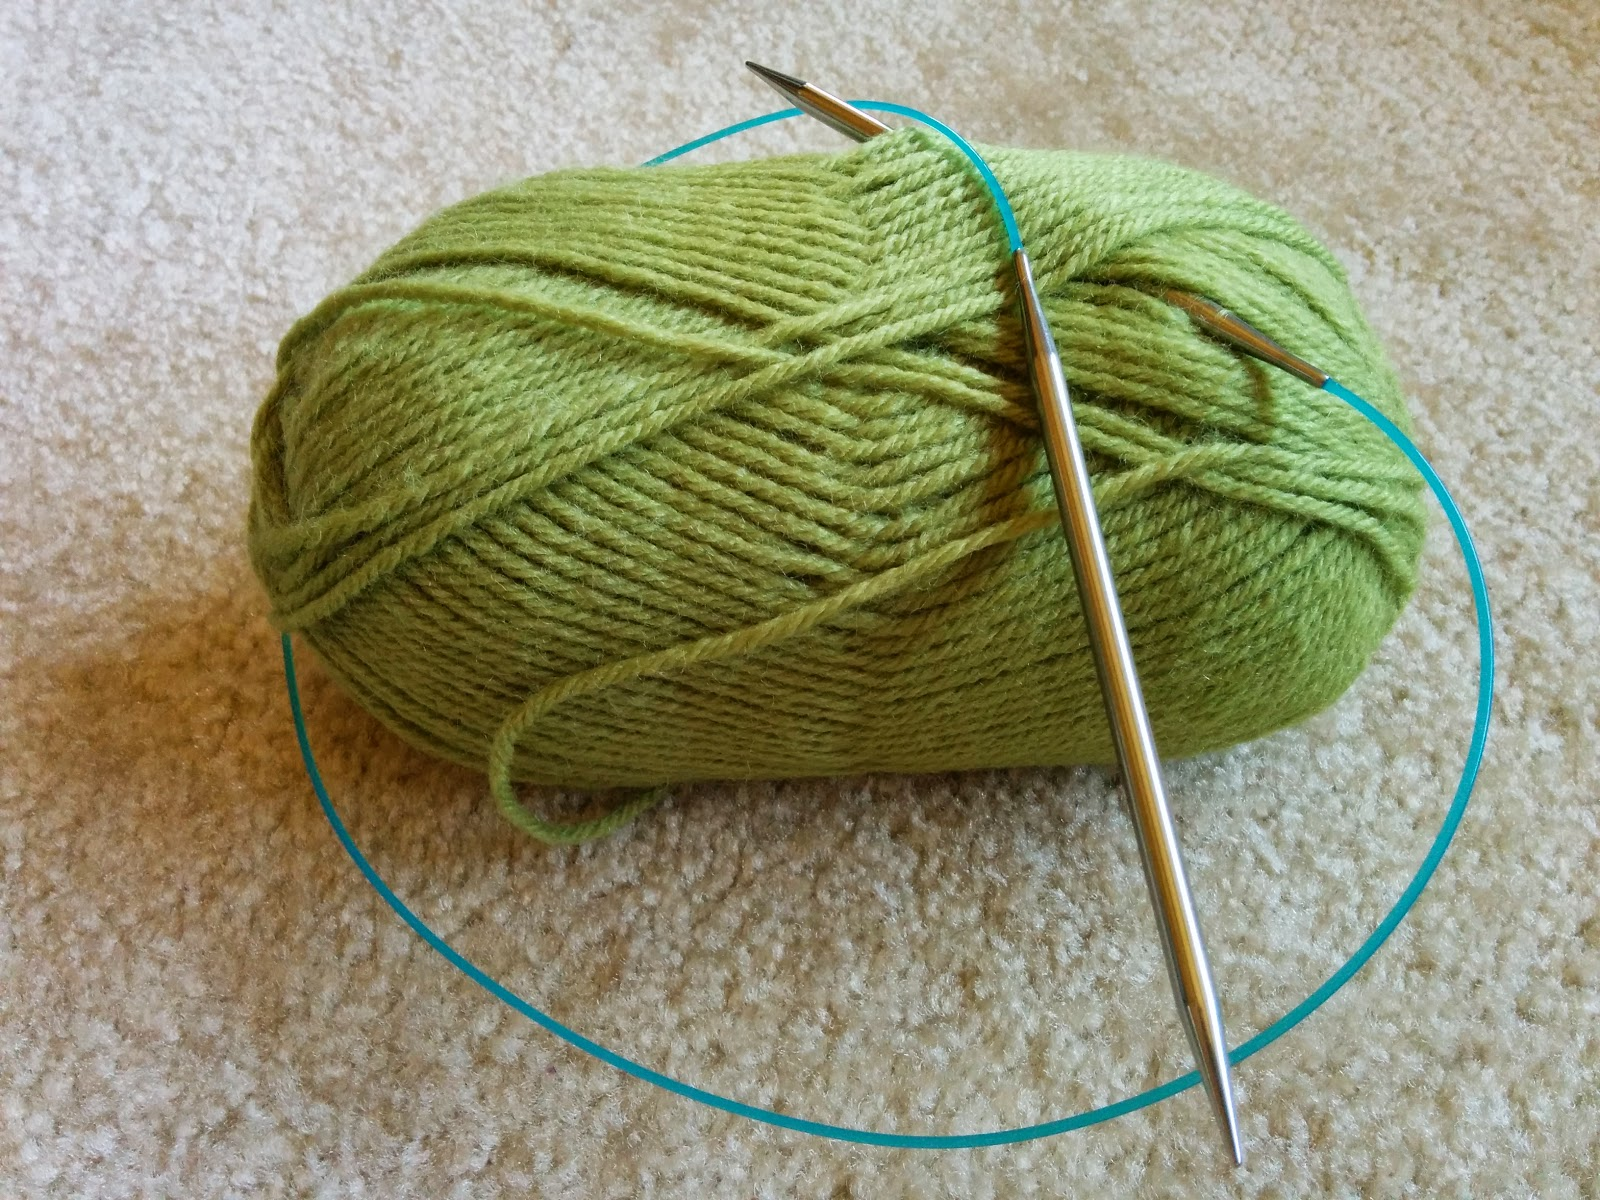 Knitting Tips And Tricks For Beginners : Knitting cardigan circular needles full zip sweater